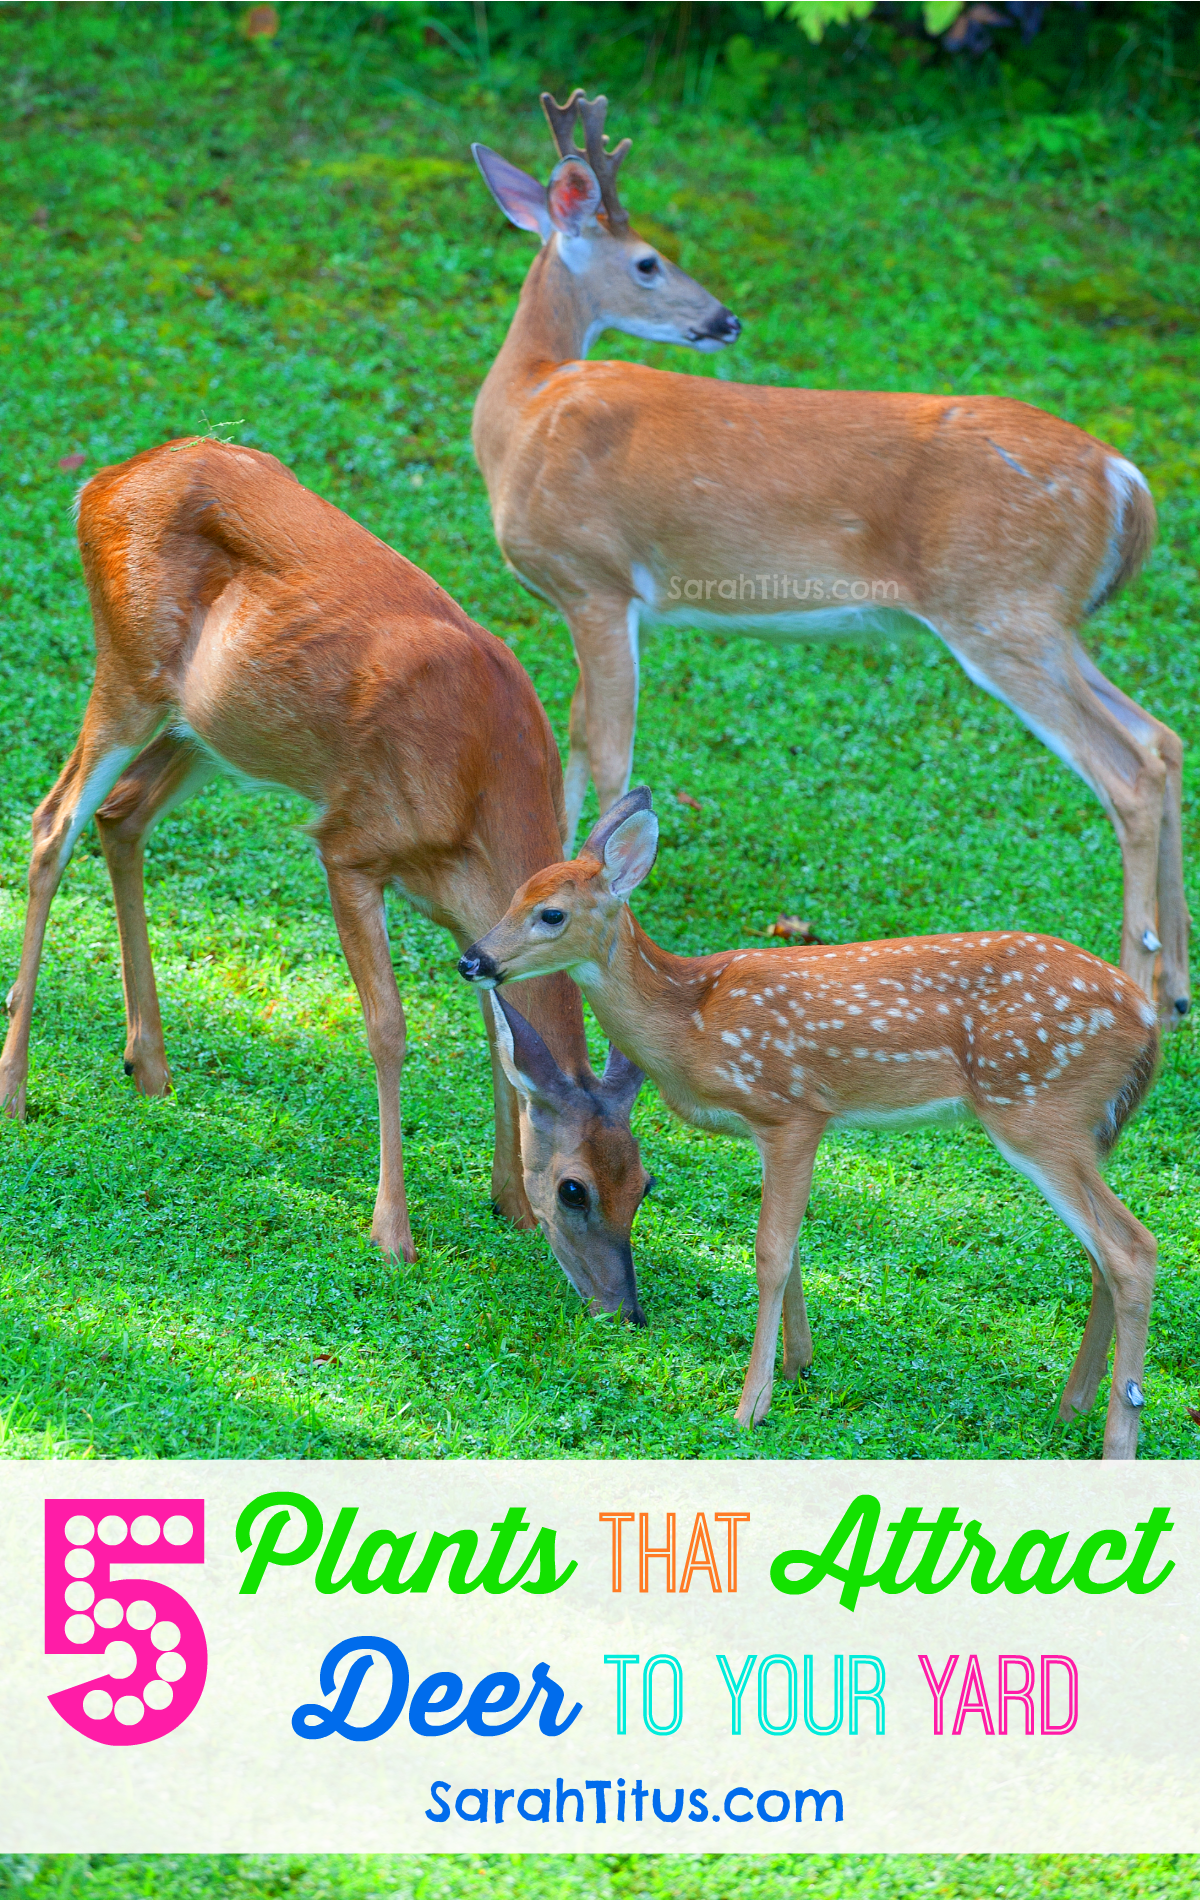 most gardeners spend a lot of time trying to figure out how to keep deer out of their gardens but there are some of